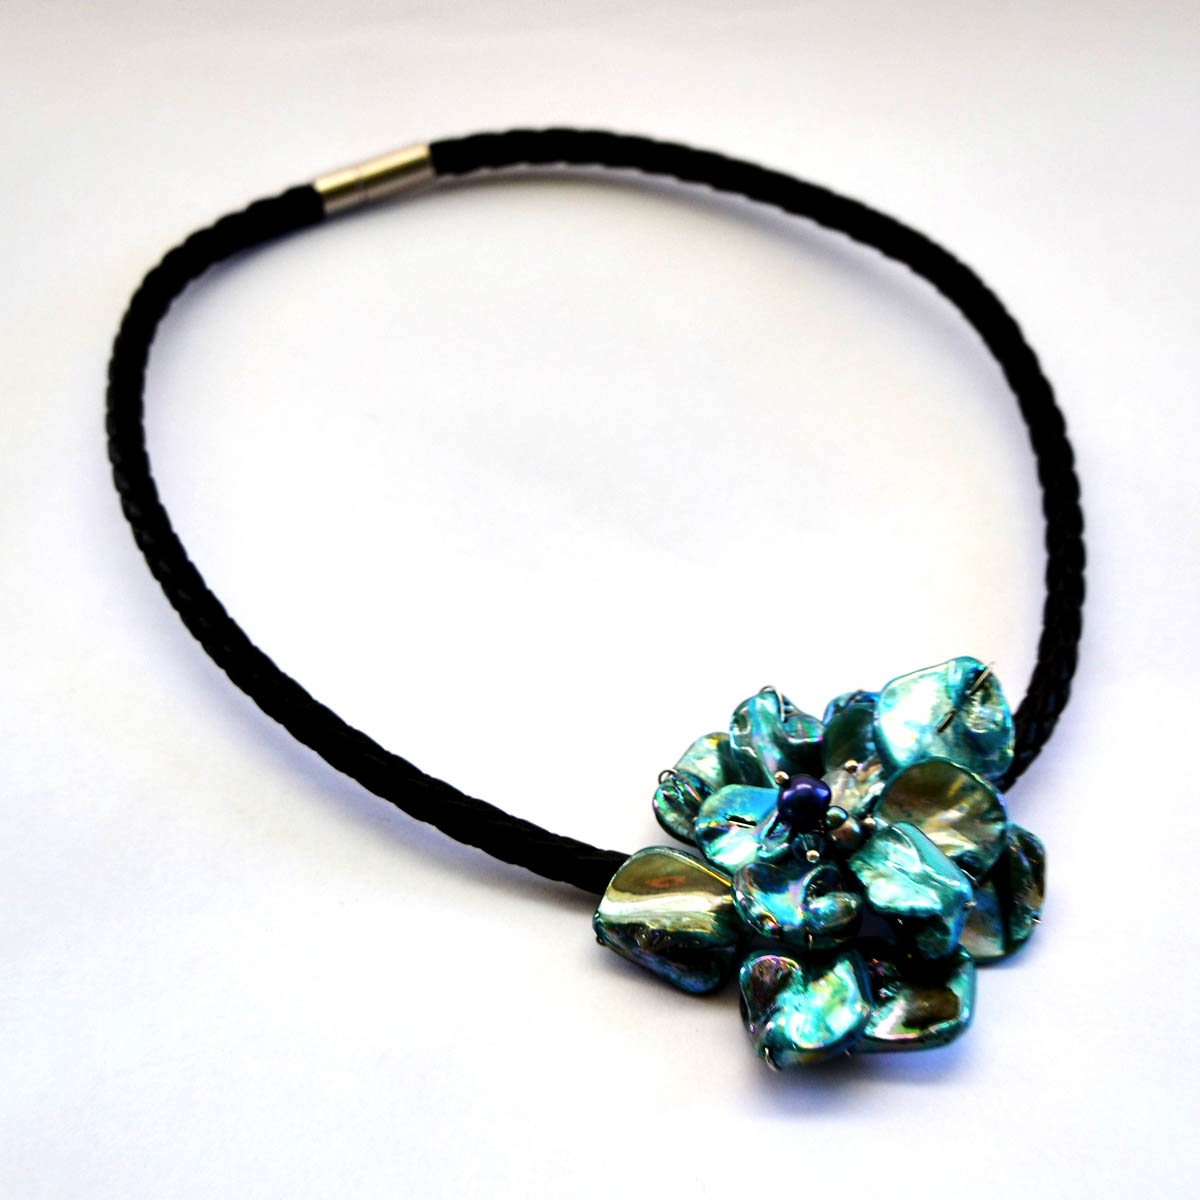 Turquoise Necklace - This stunning necklace features a simple rope band and elegant hand crafted Nepalese turquoise and sterling pendant. Add something fun and unique to your wardrobe!